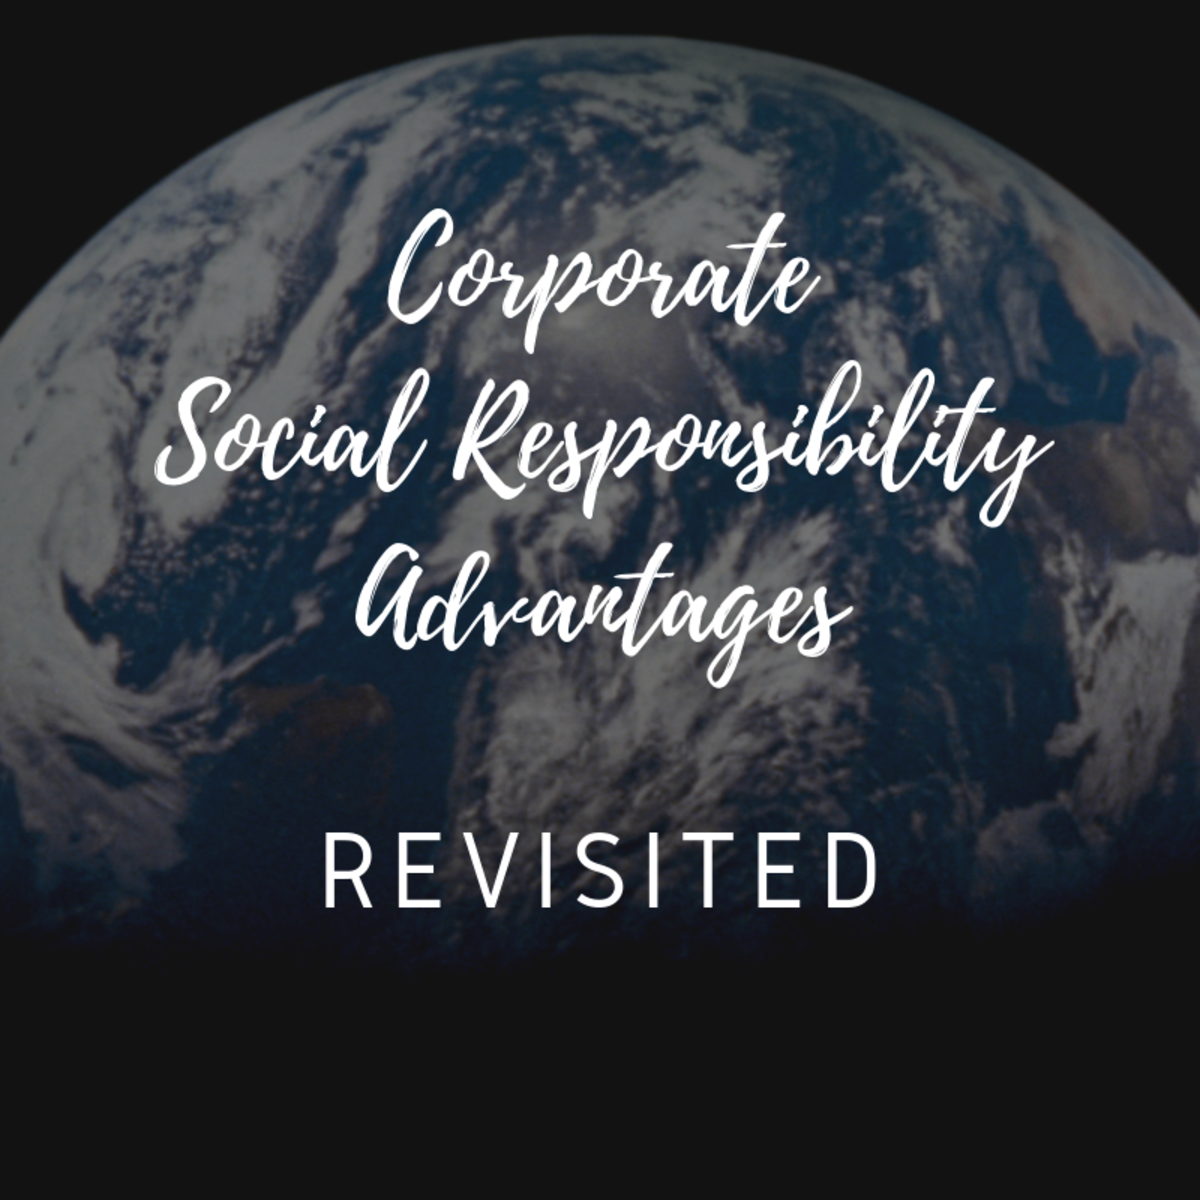 Review some observations and frustrations with the corporate social responsibility movement.